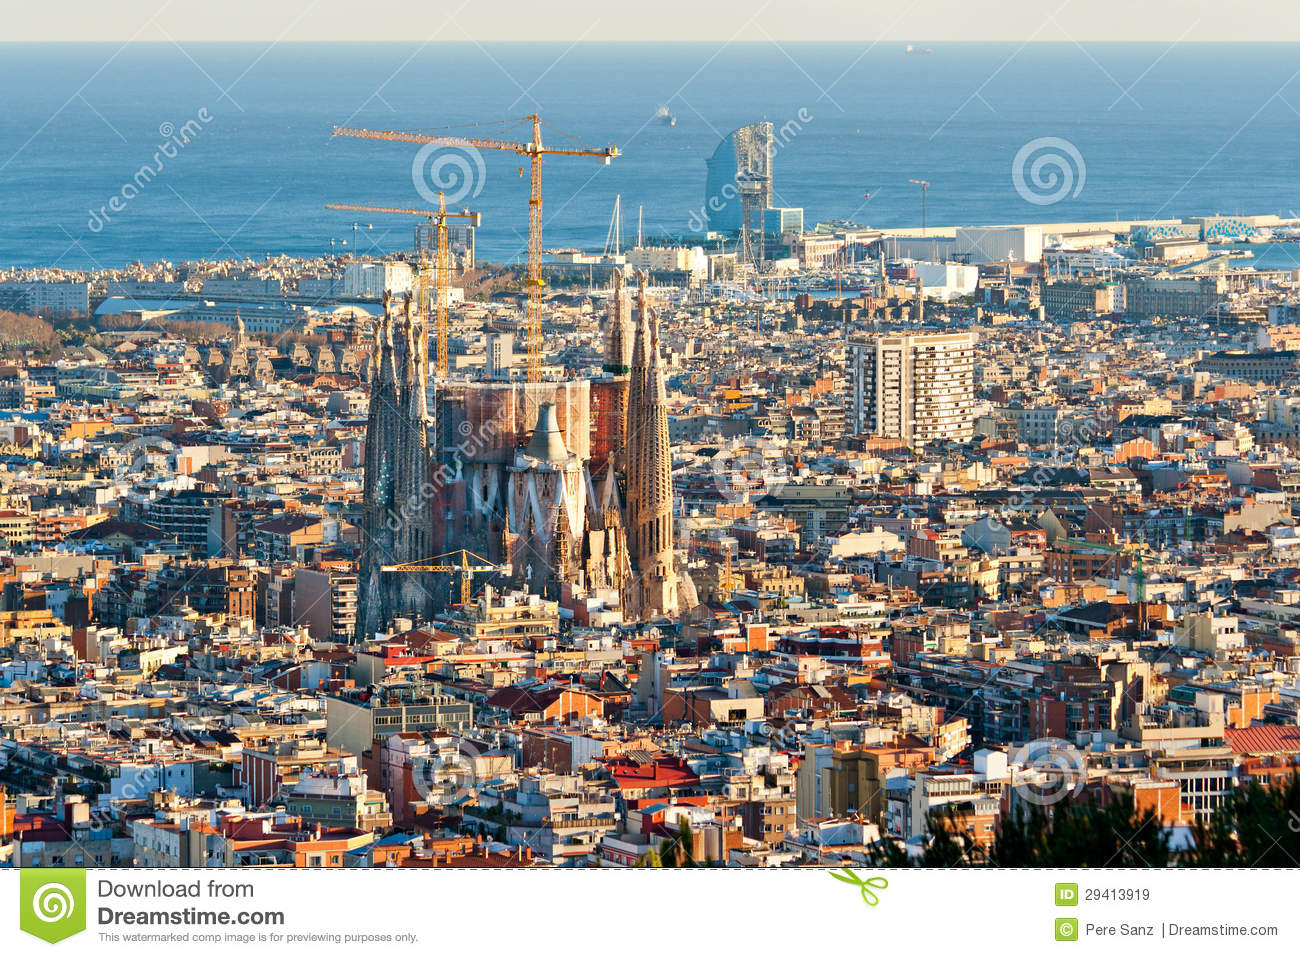 Aerial View Of The Sagrada Familia Editorial Stock Image - Image: 29413919